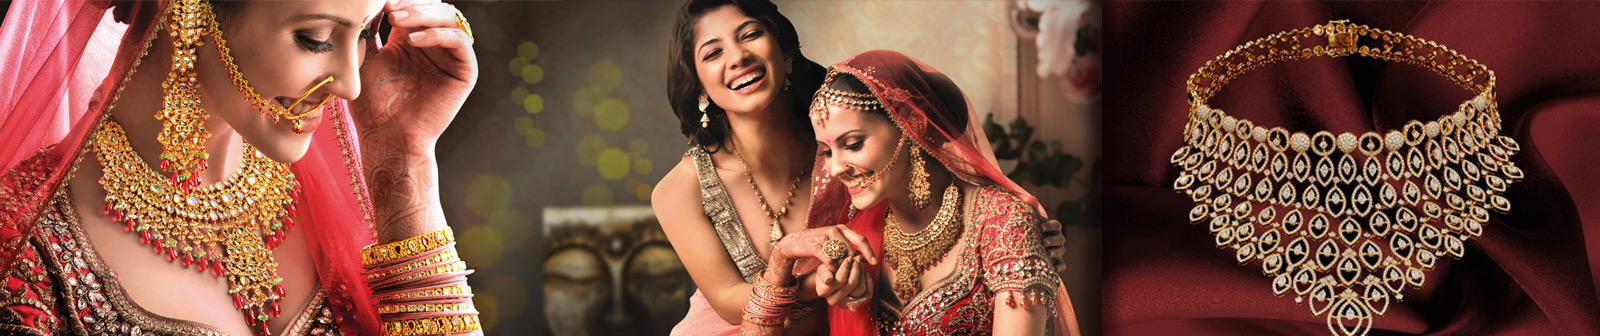 Top Bridal Jewelers in Delhi